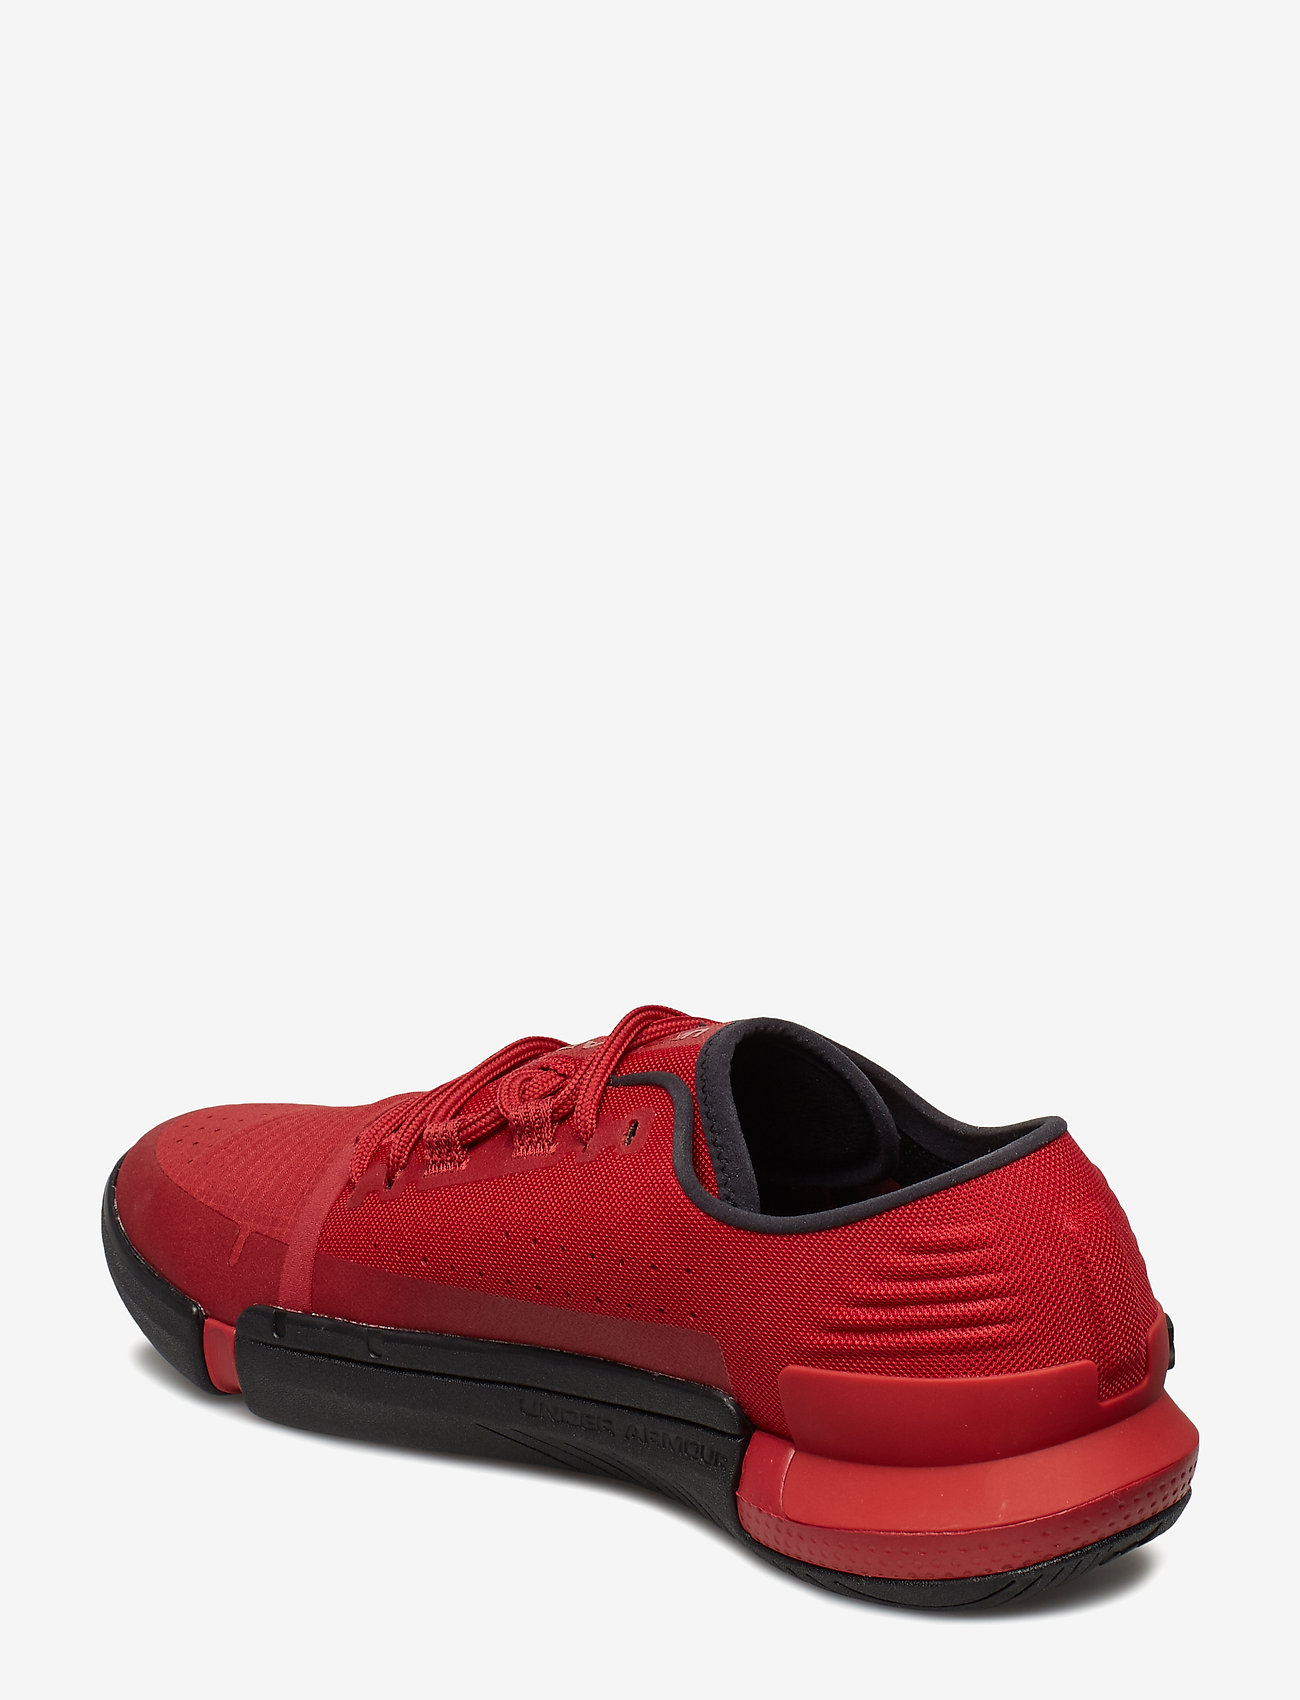 Ua Tribase Reign (Red) - Under Armour